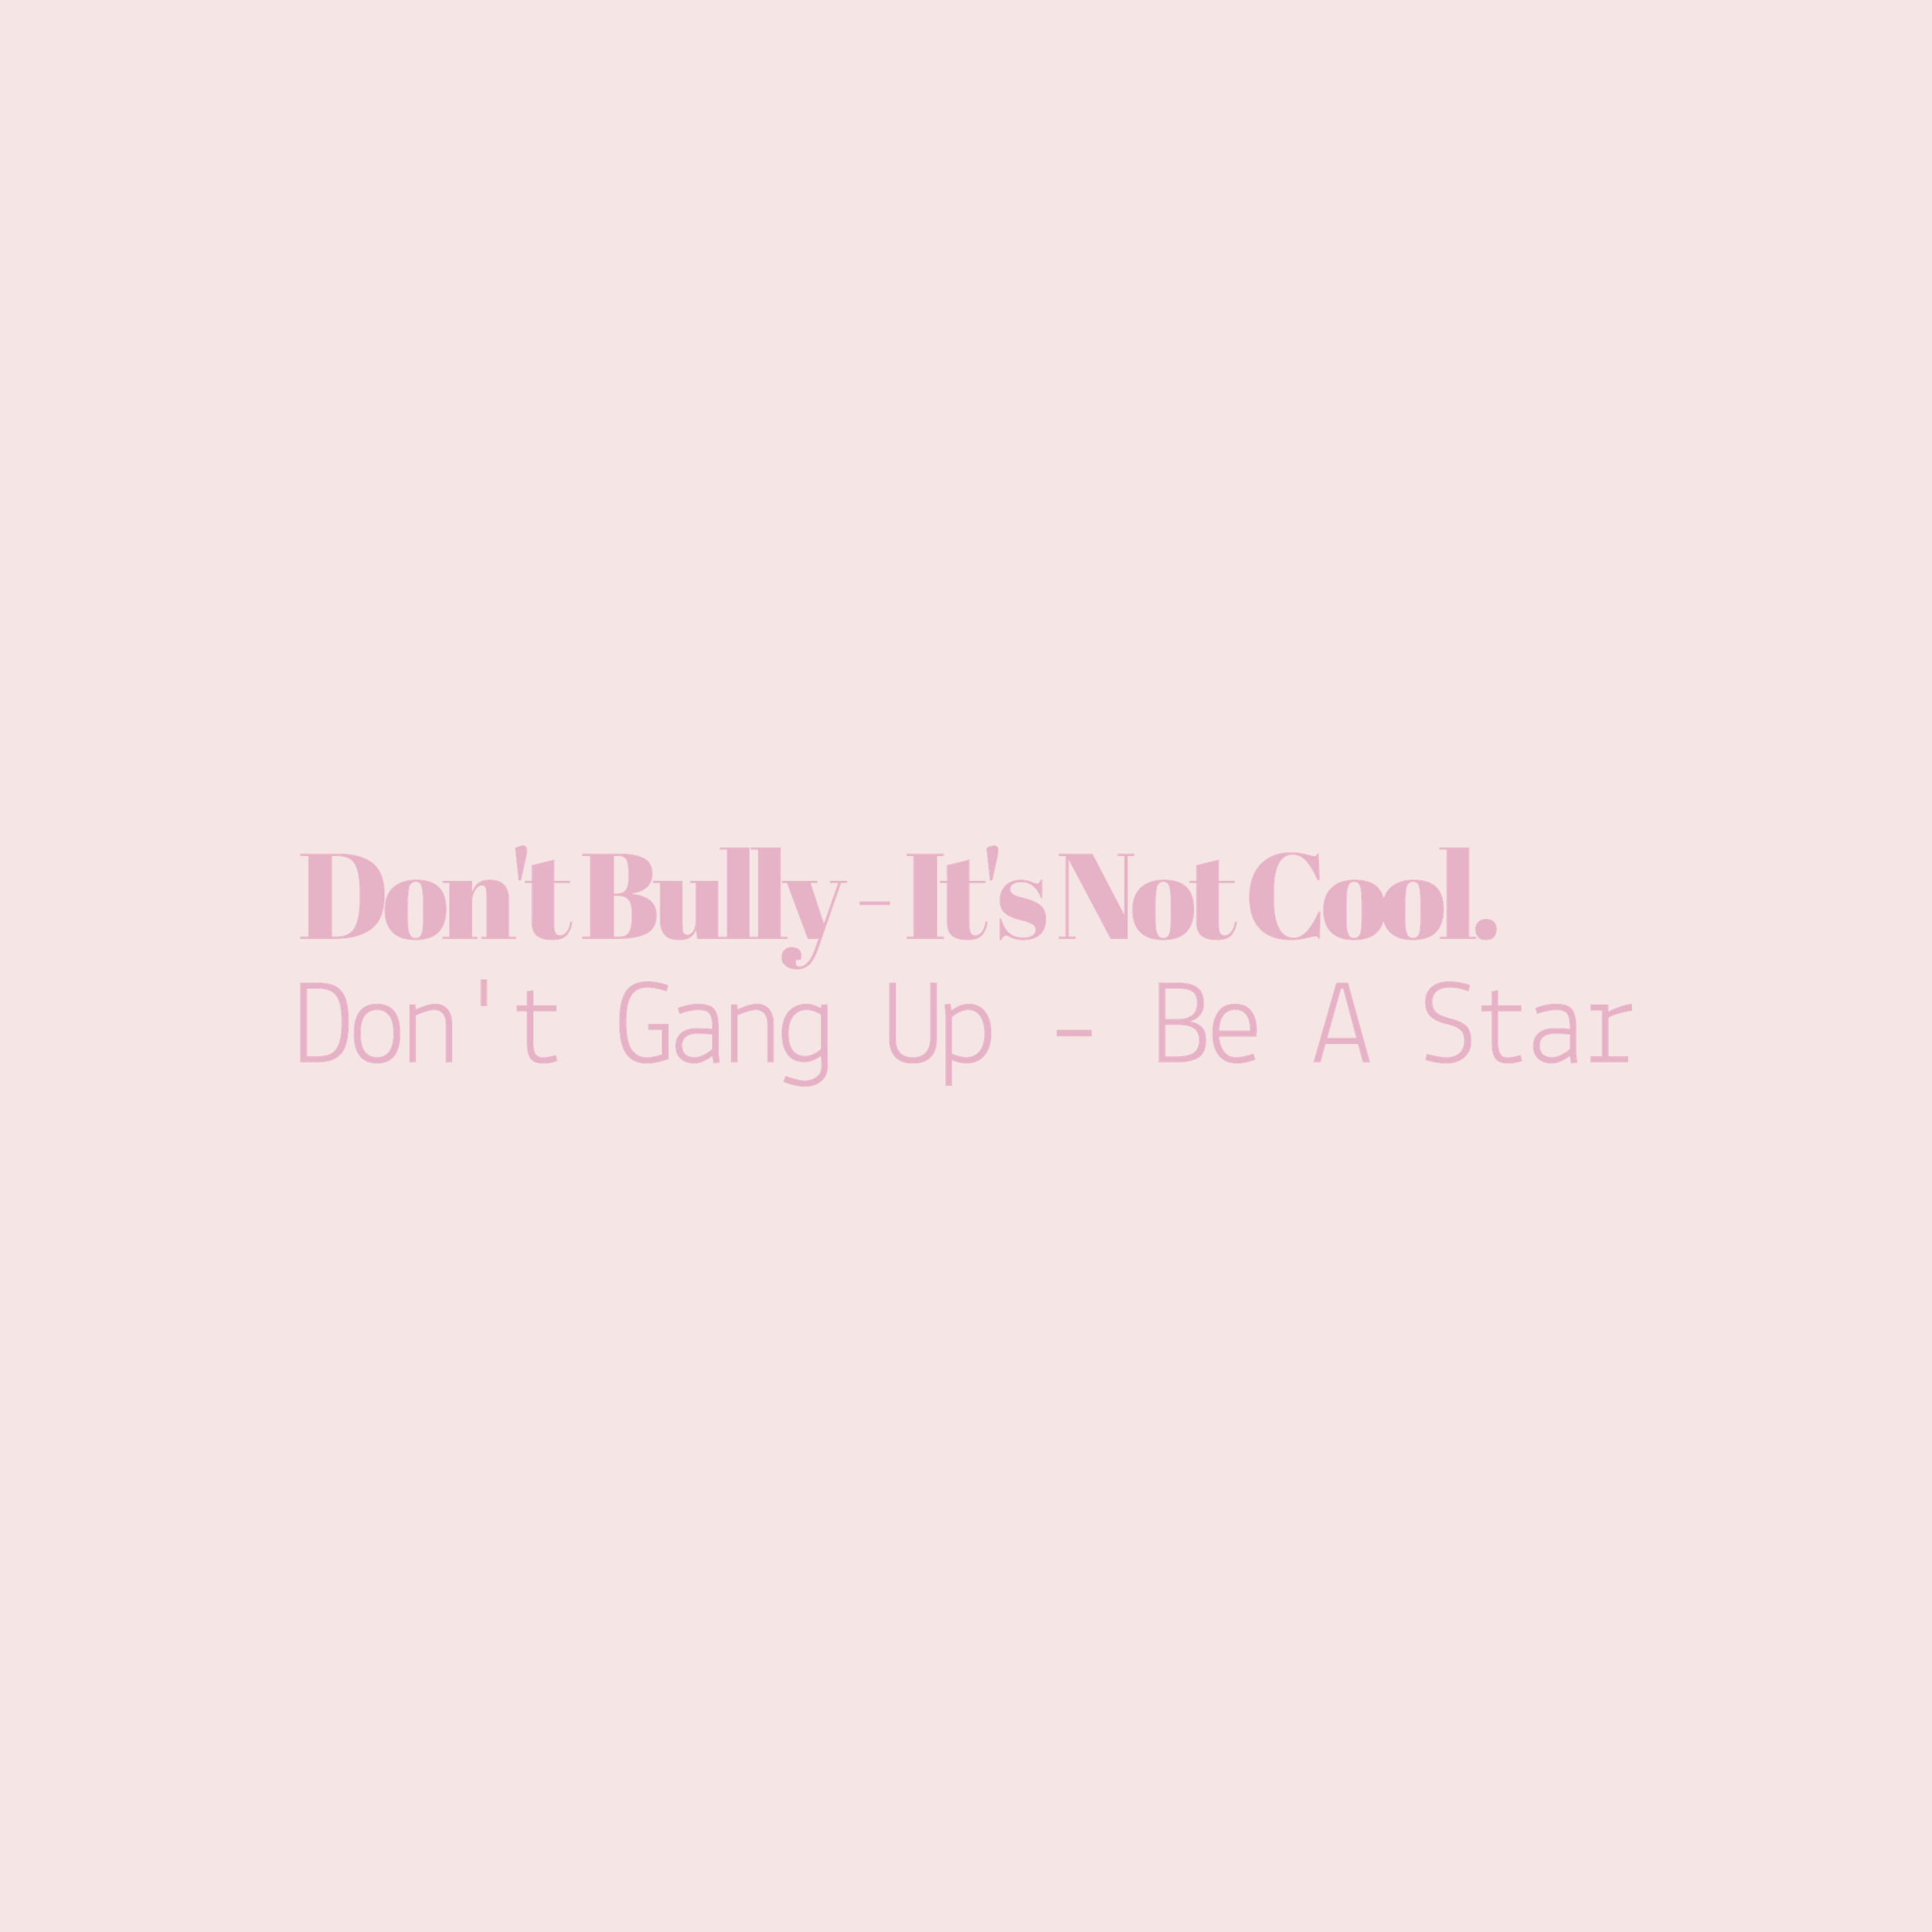 Don't Bully - It's Not Cool.